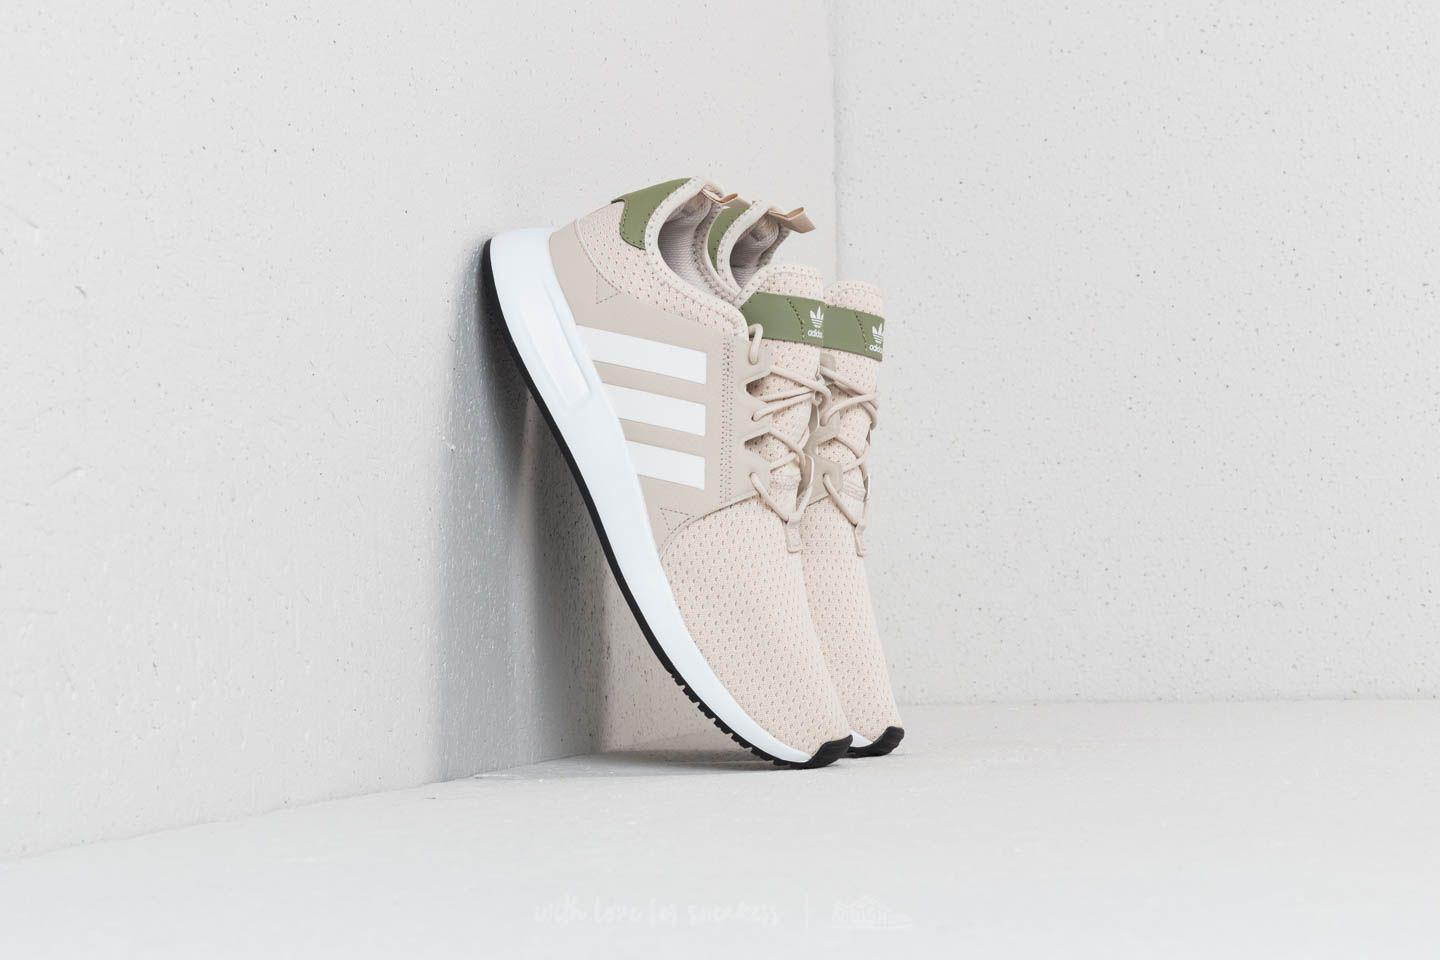 73cdbbd66785 Lyst - adidas Originals Adidas X plr Cream Brown  Footwear White ...